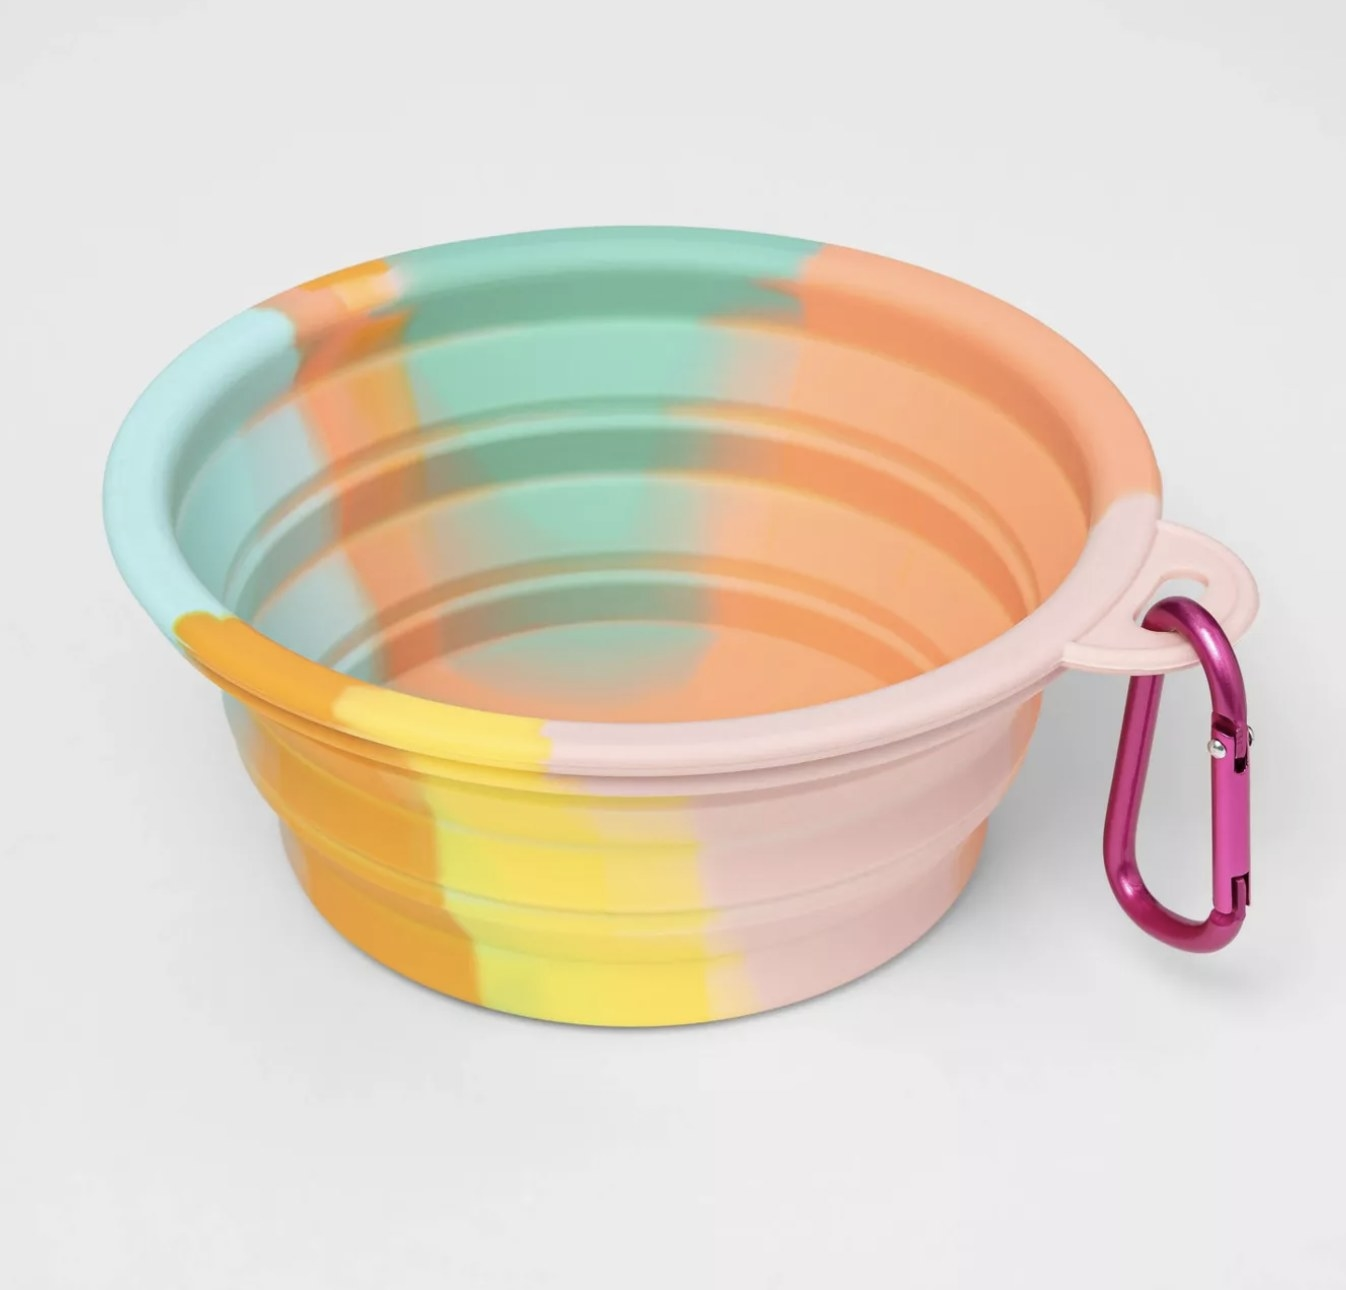 A collapsible dog bowl in a tie-dye pattern